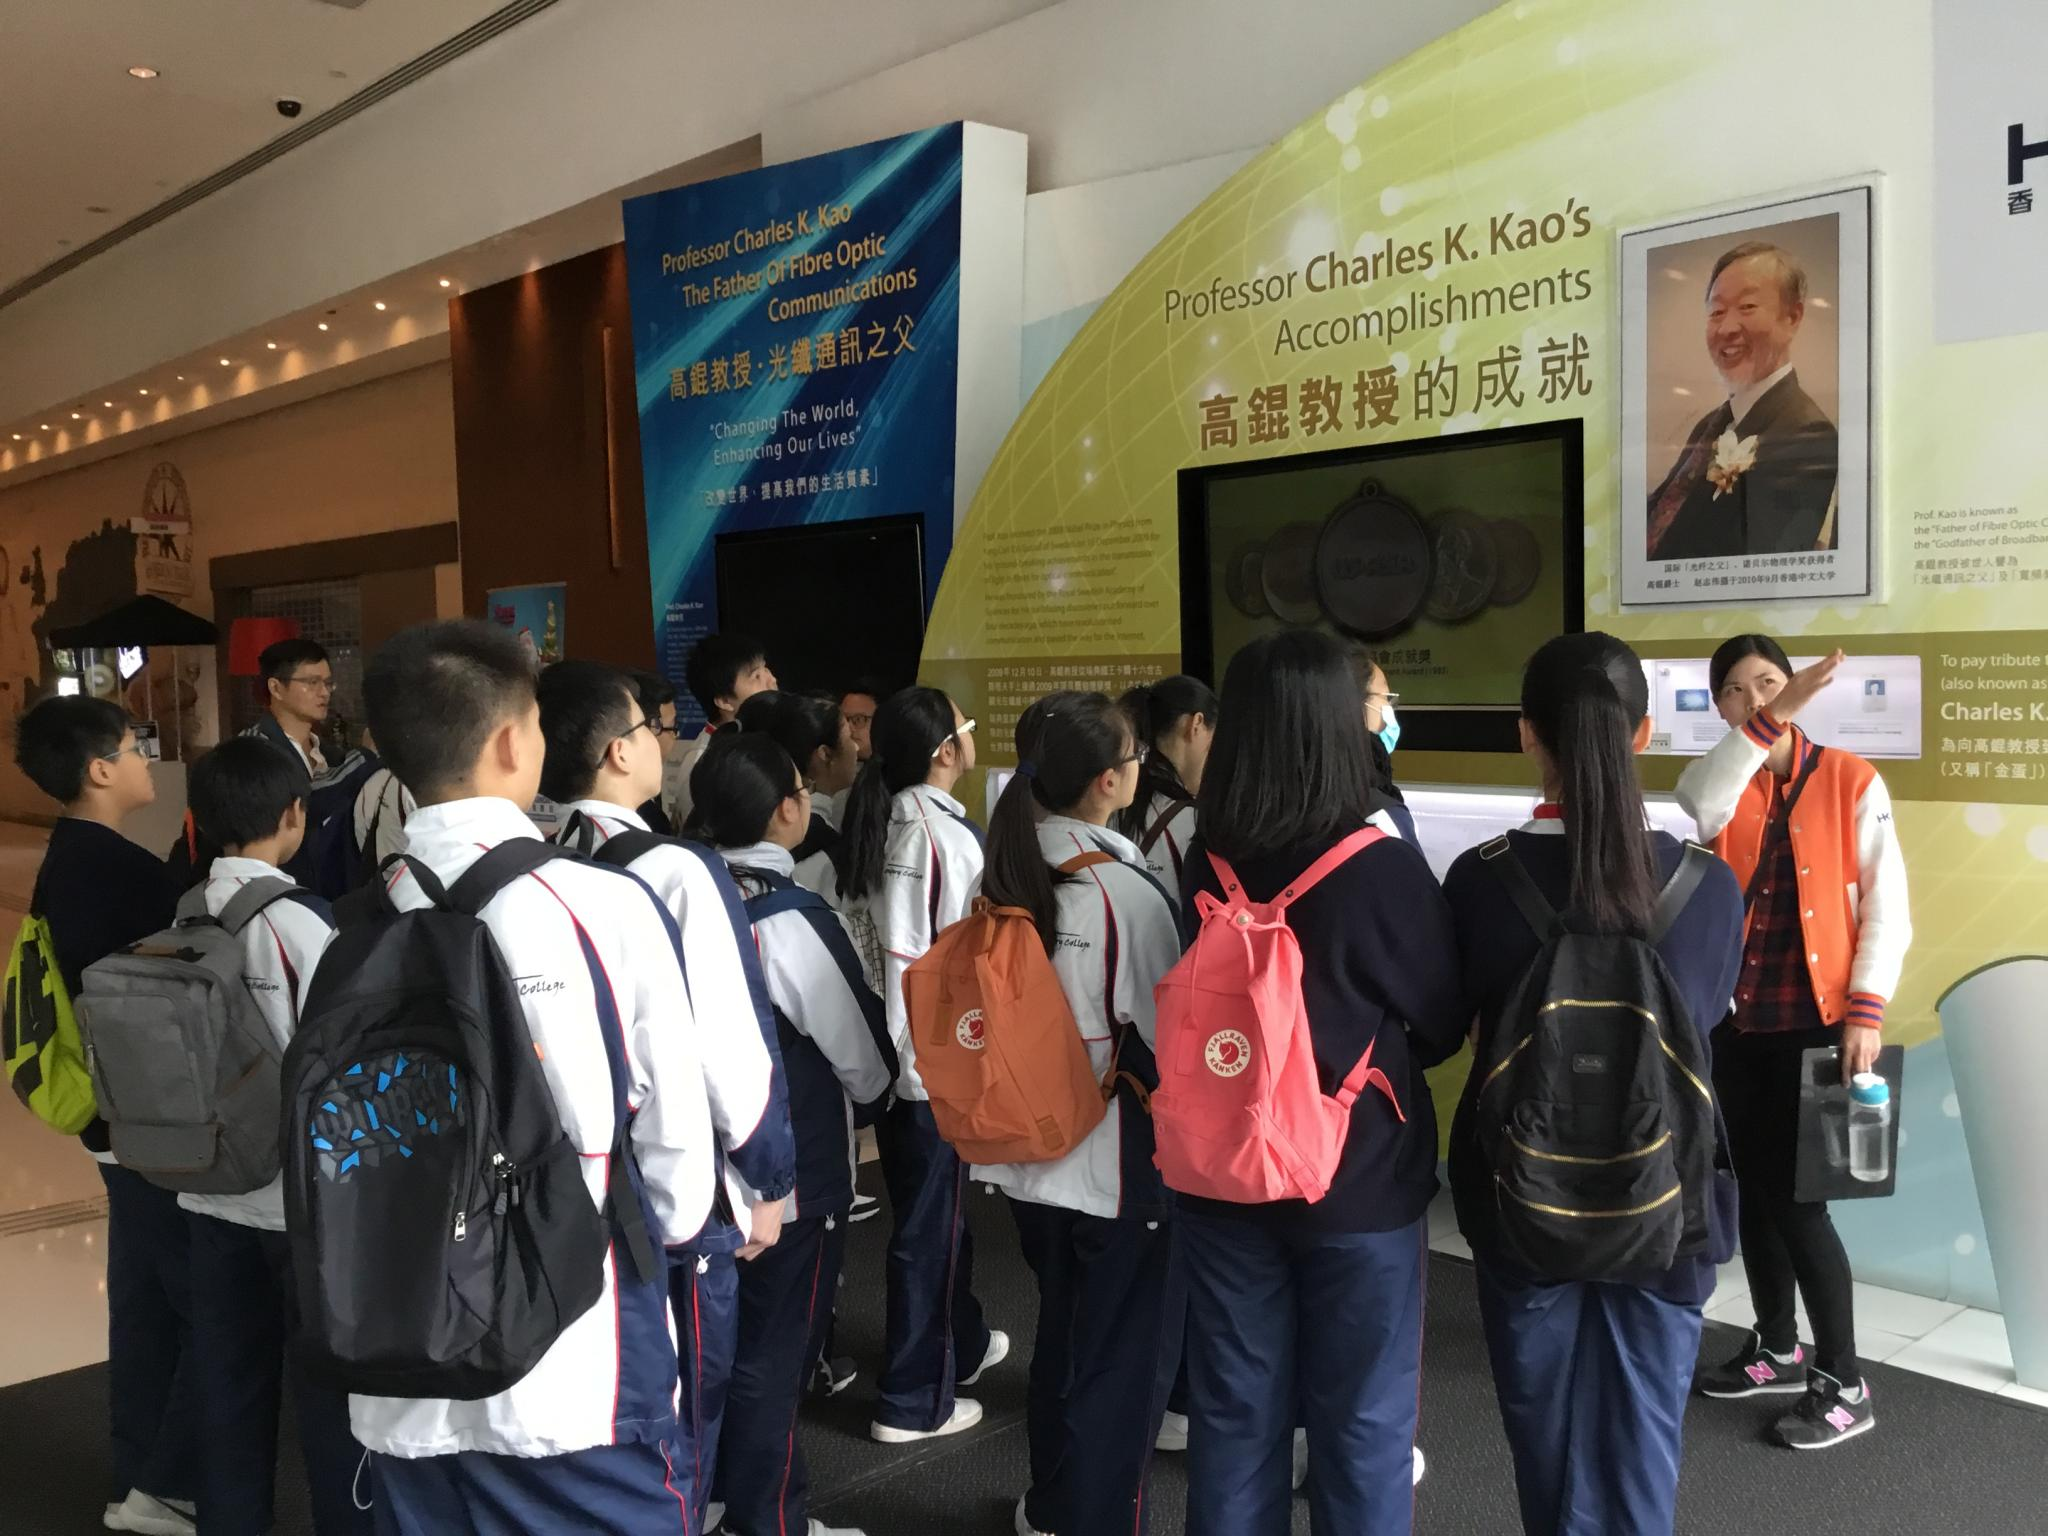 Students learned about Professor Charles K. Kao's accomplishments.